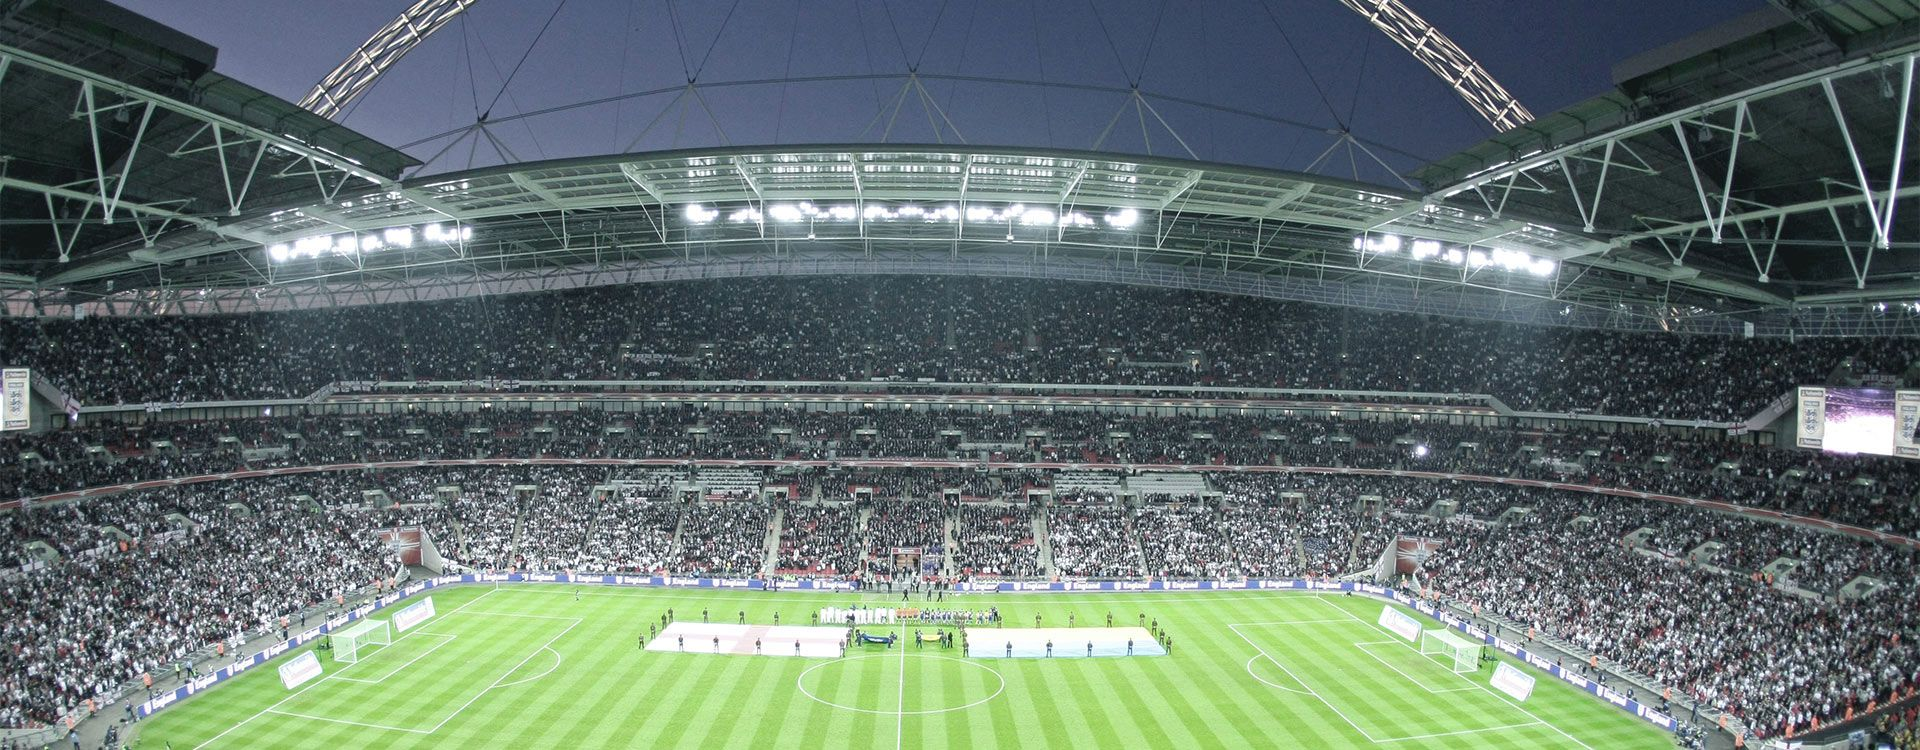 bnr-engineering-wembley- stadium-interior- view